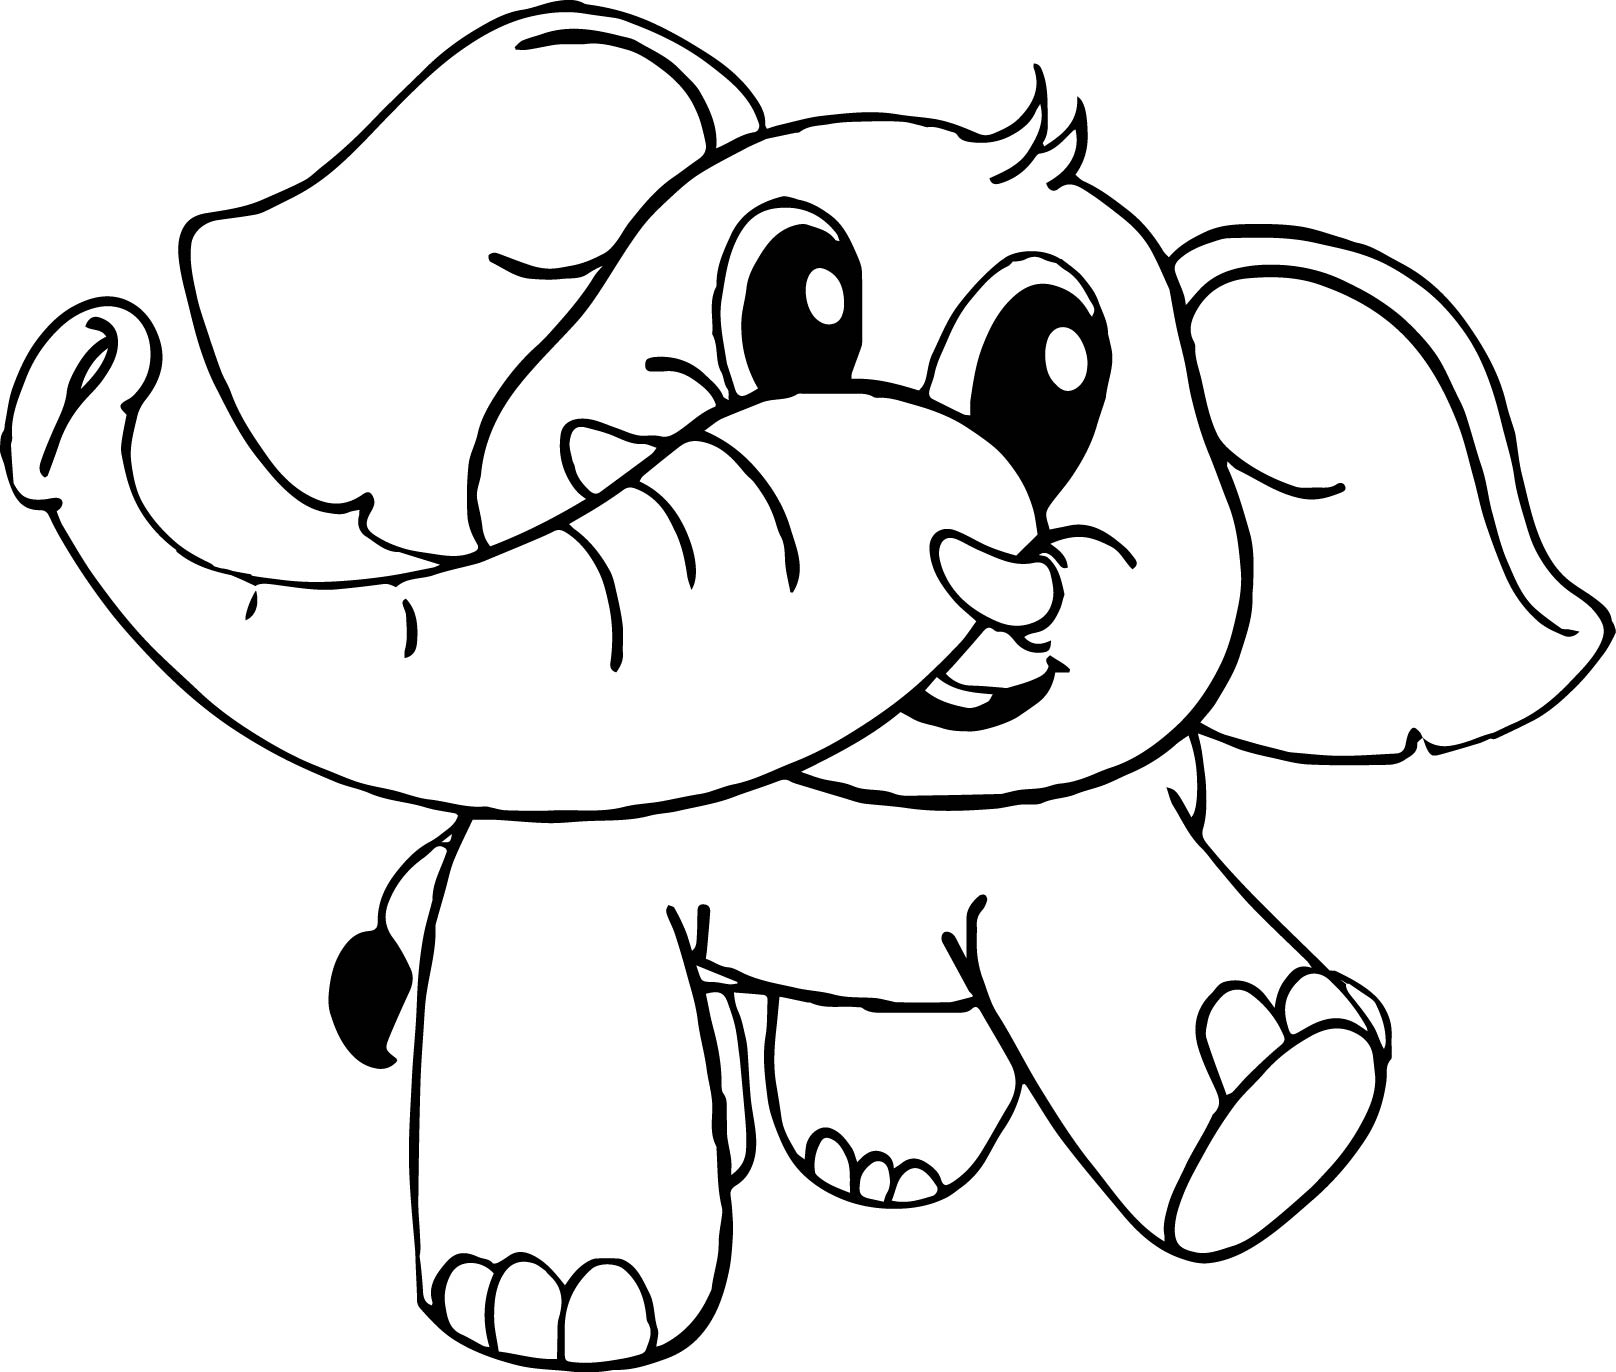 colouring picture of an elephant baby cartoon elephant coloring page wecoloringpagecom colouring picture an of elephant